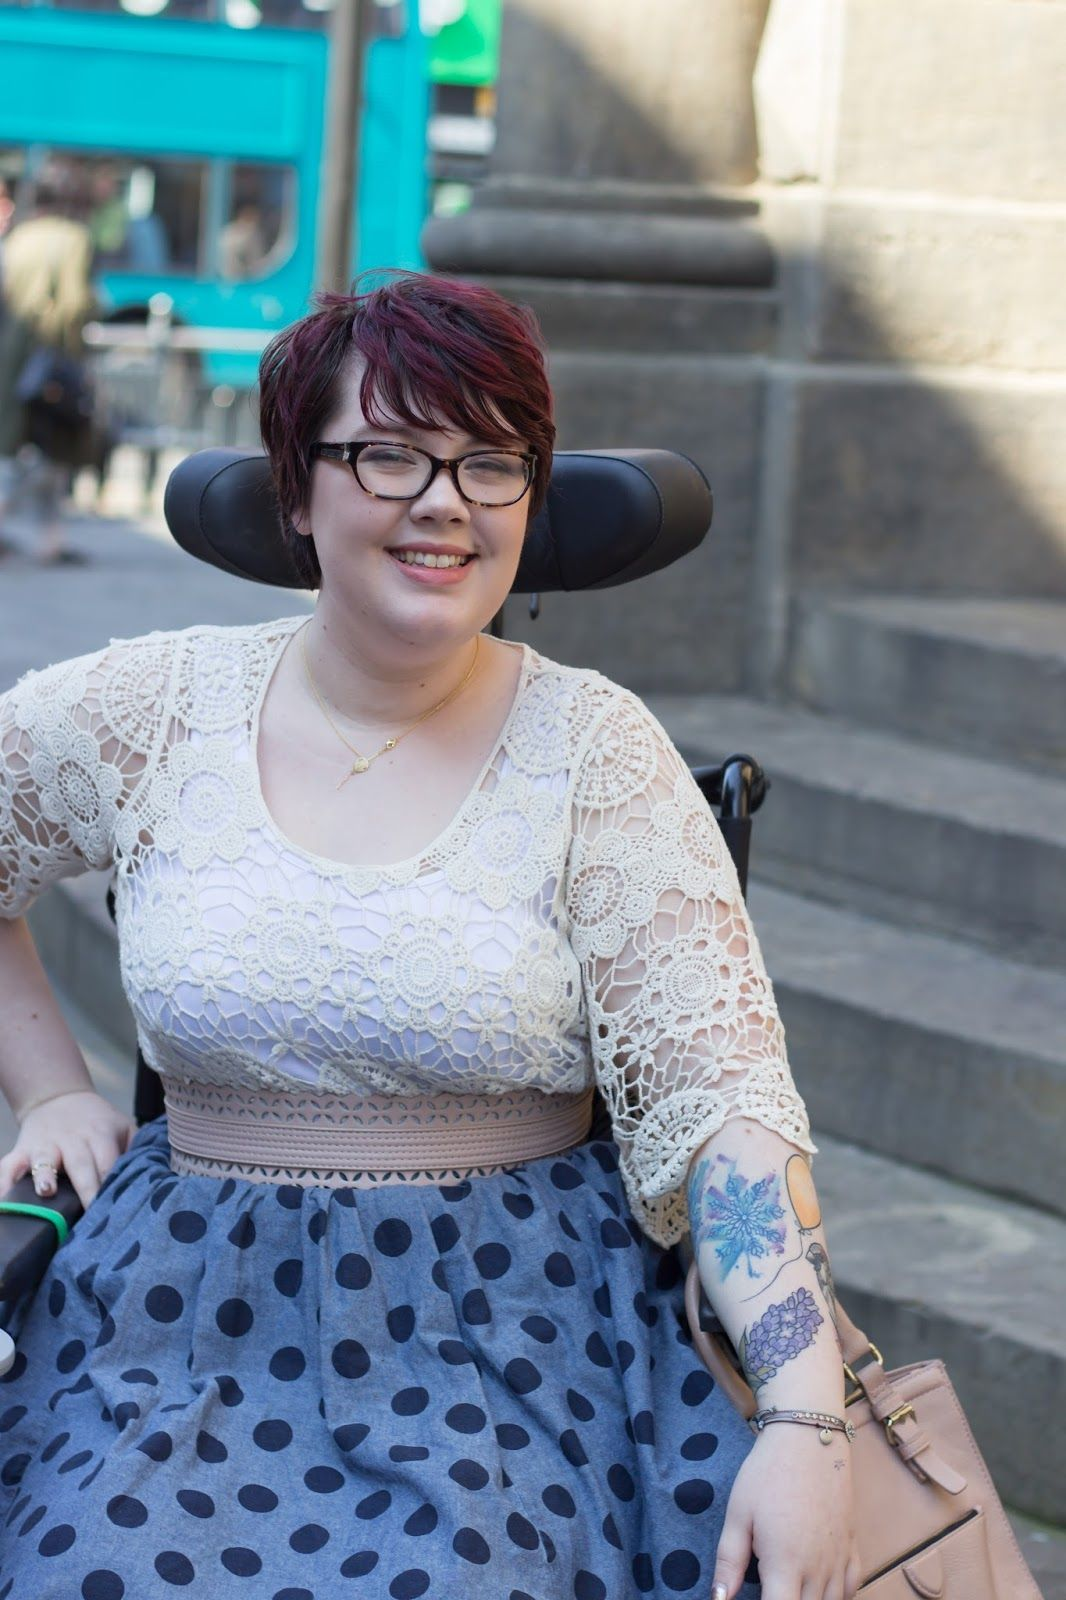 Wheelchair Fashion: Spots, Crochet & Golden Balloons Crochet tops are very in right now apparently. I am LOVING them & have worn this one way way too often. I love wearing it with this skirt, polka dots look cute with everything!